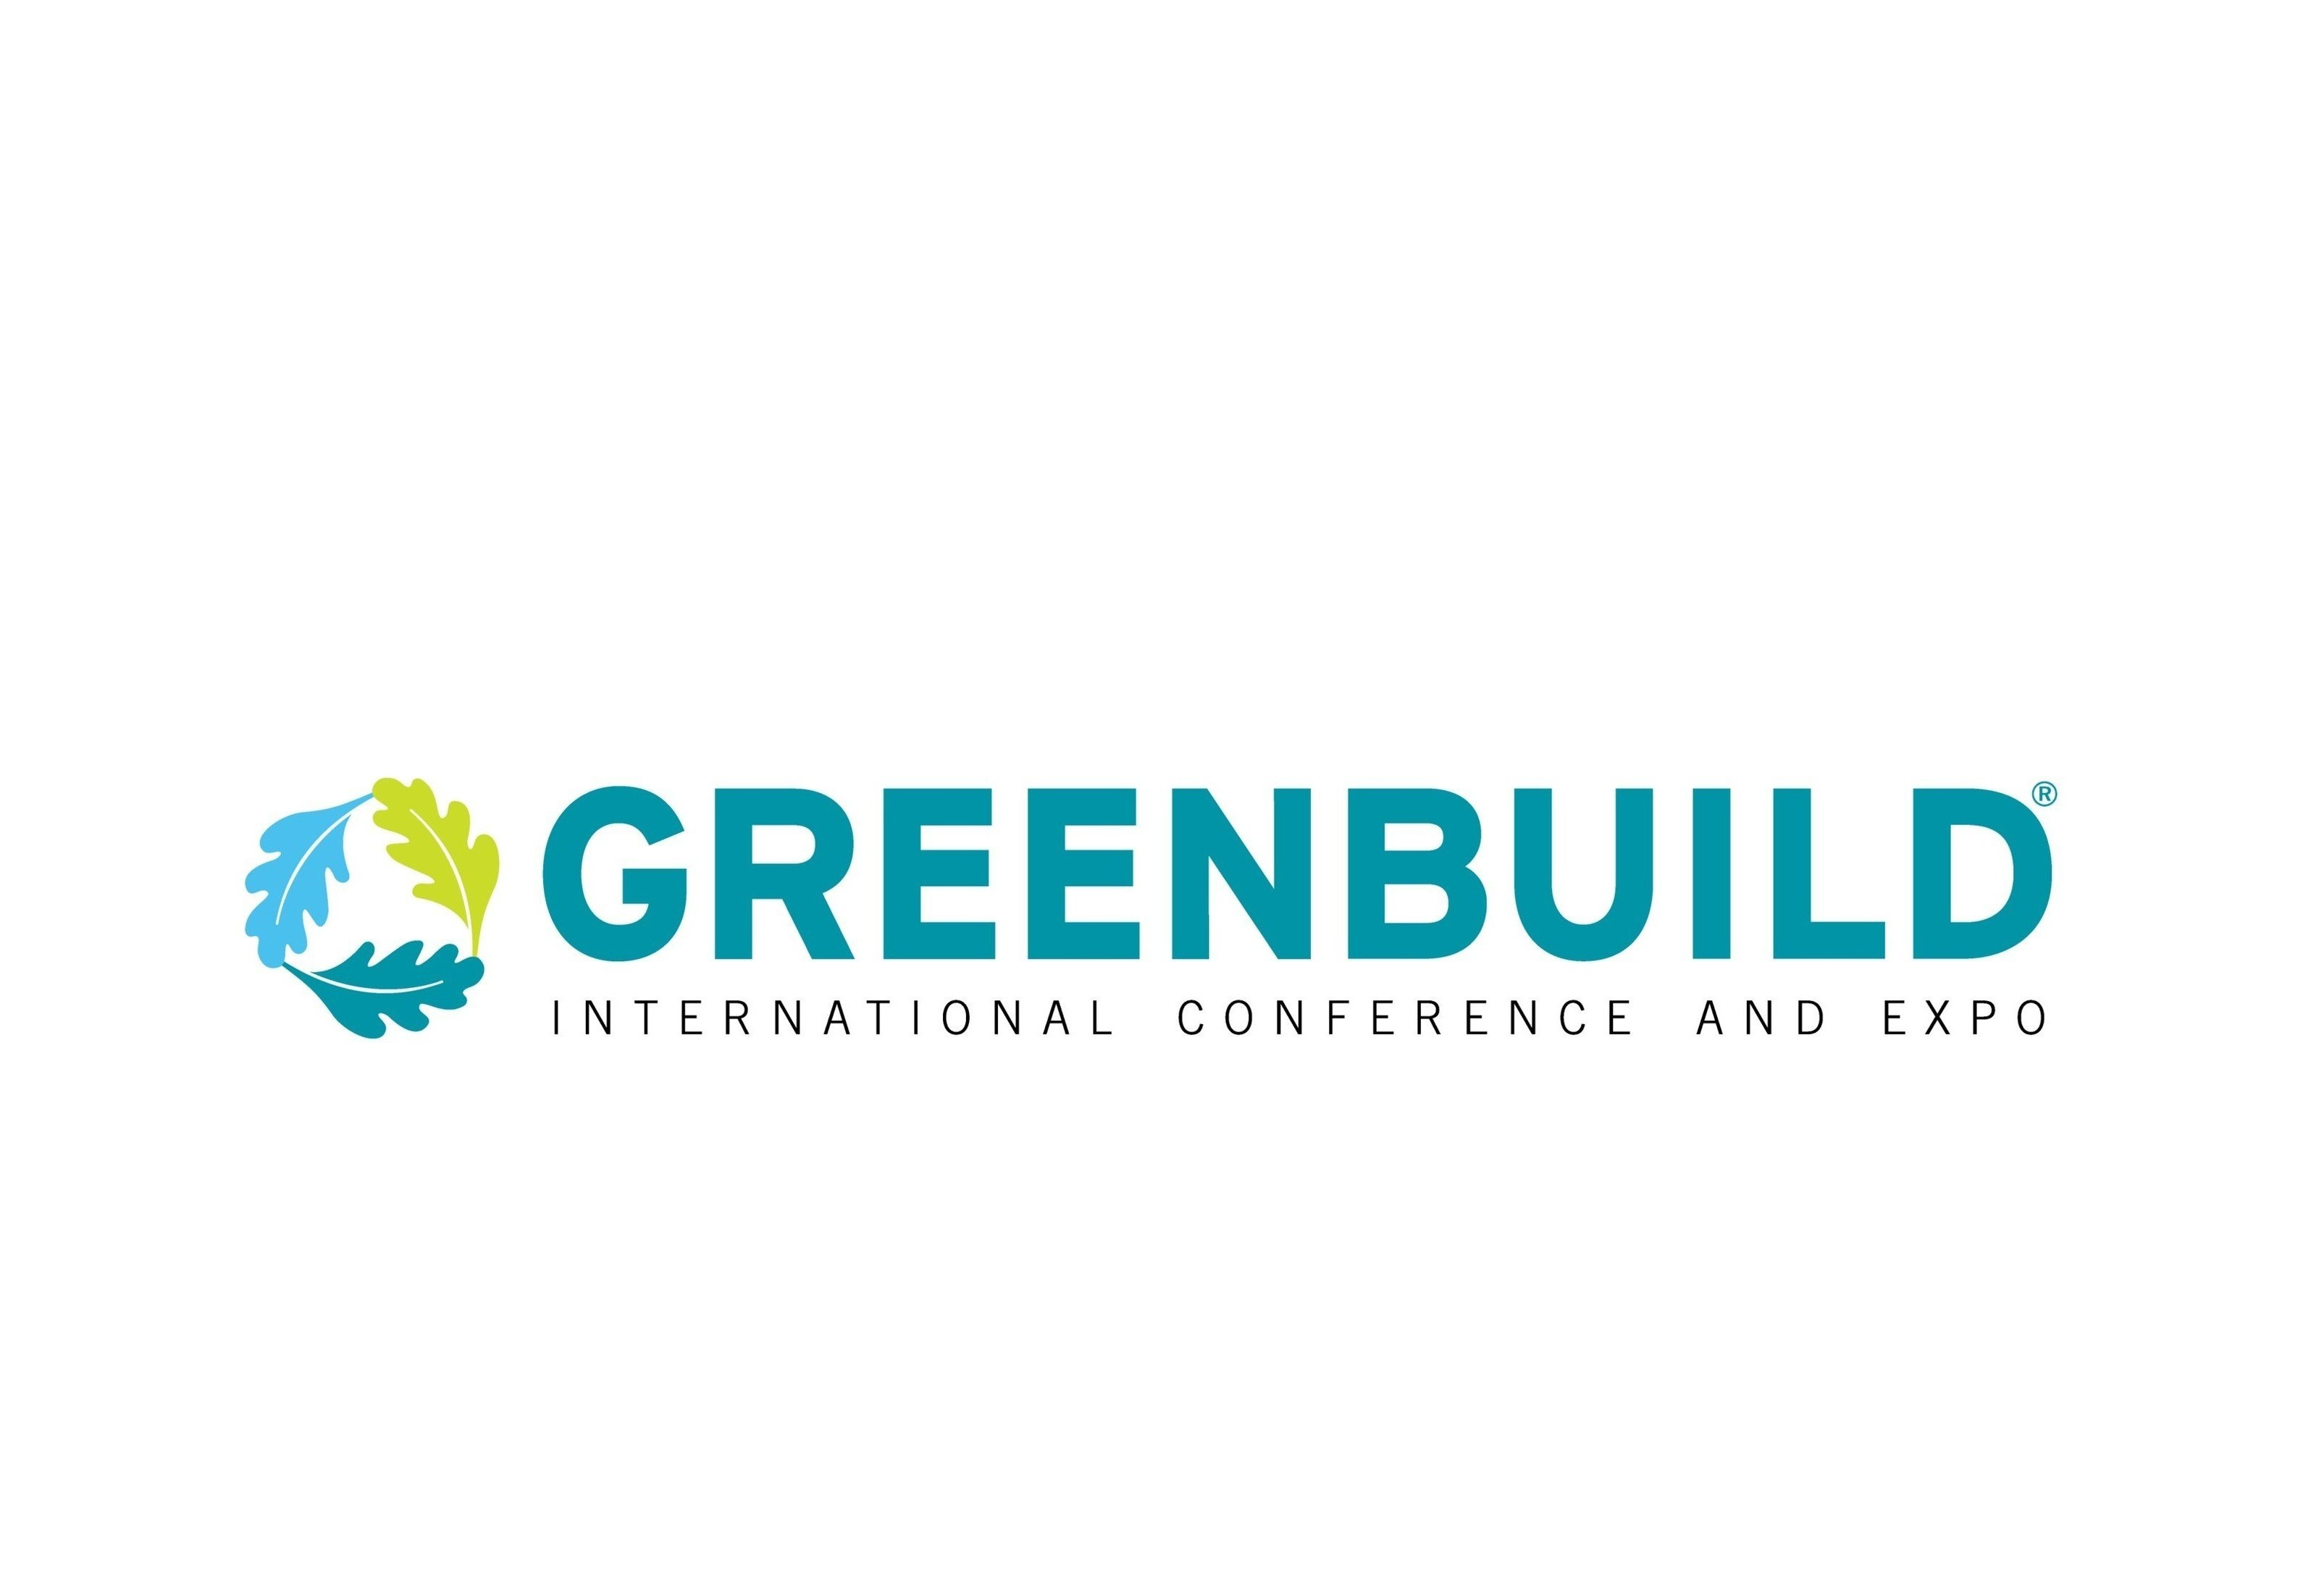 Conheça o Greenbuild International Conference and Expo